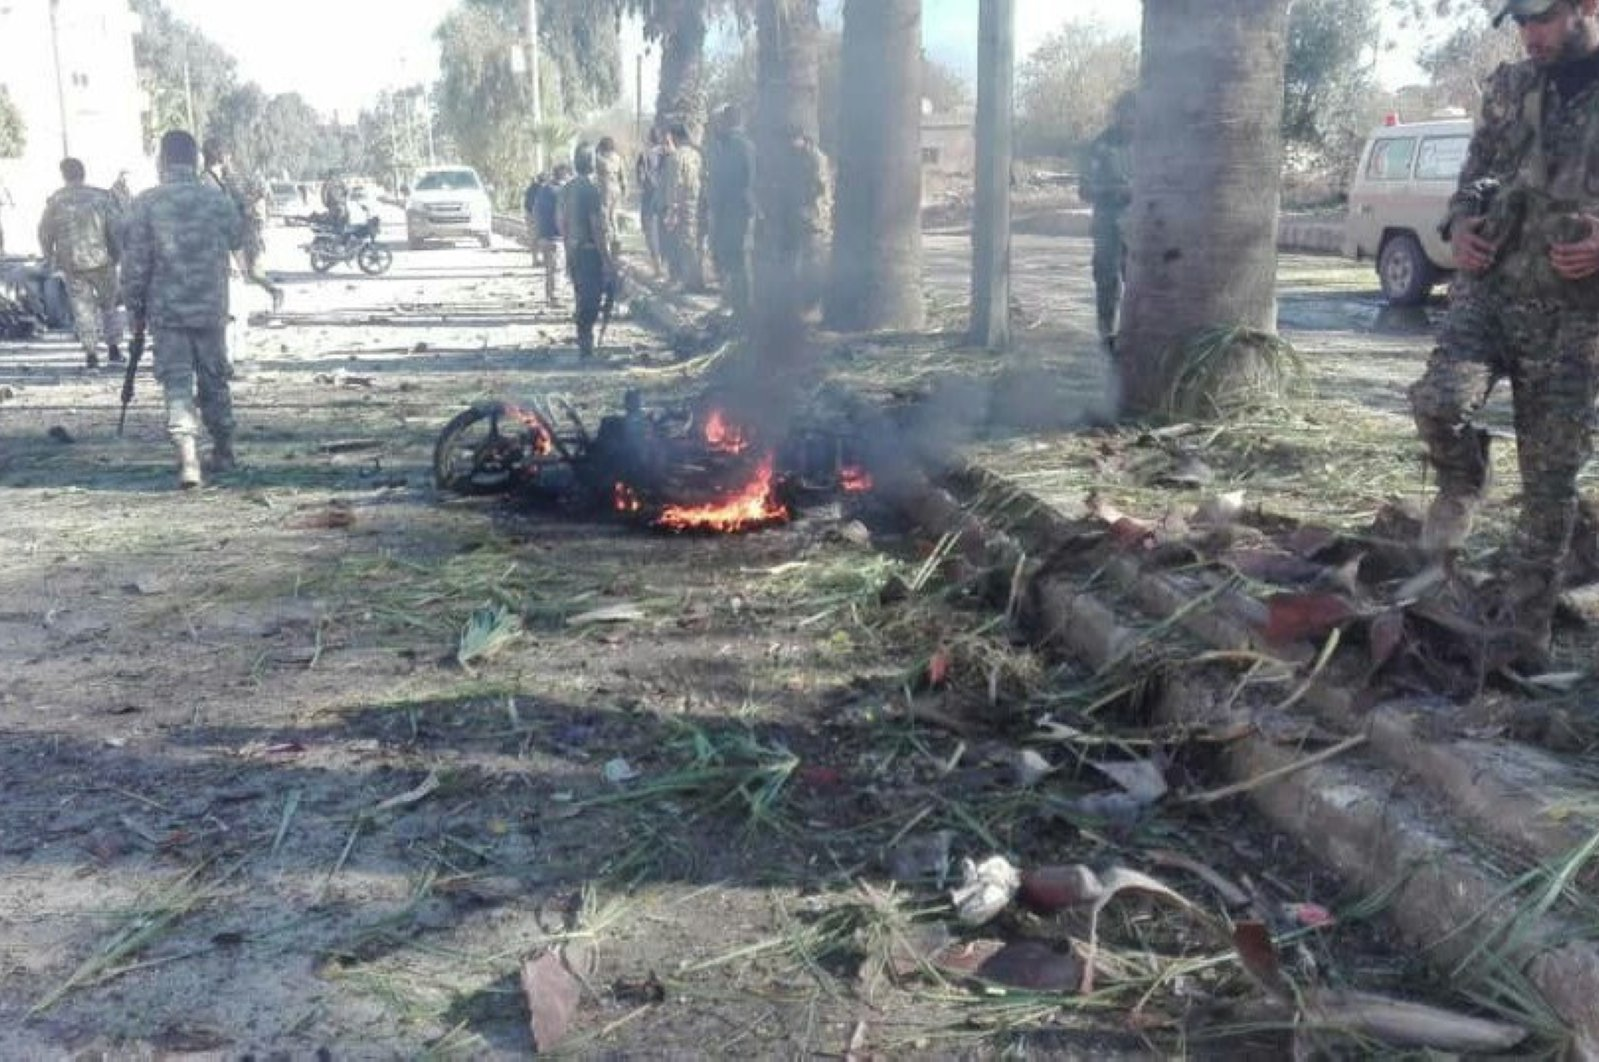 A file photo shows the carnage from a bomb-loaded vehicle attack by the YPG/PKK in Syria's Ras al-Ayn province that killed two civilians, Dec. 5, 2019. (IHA Photo)